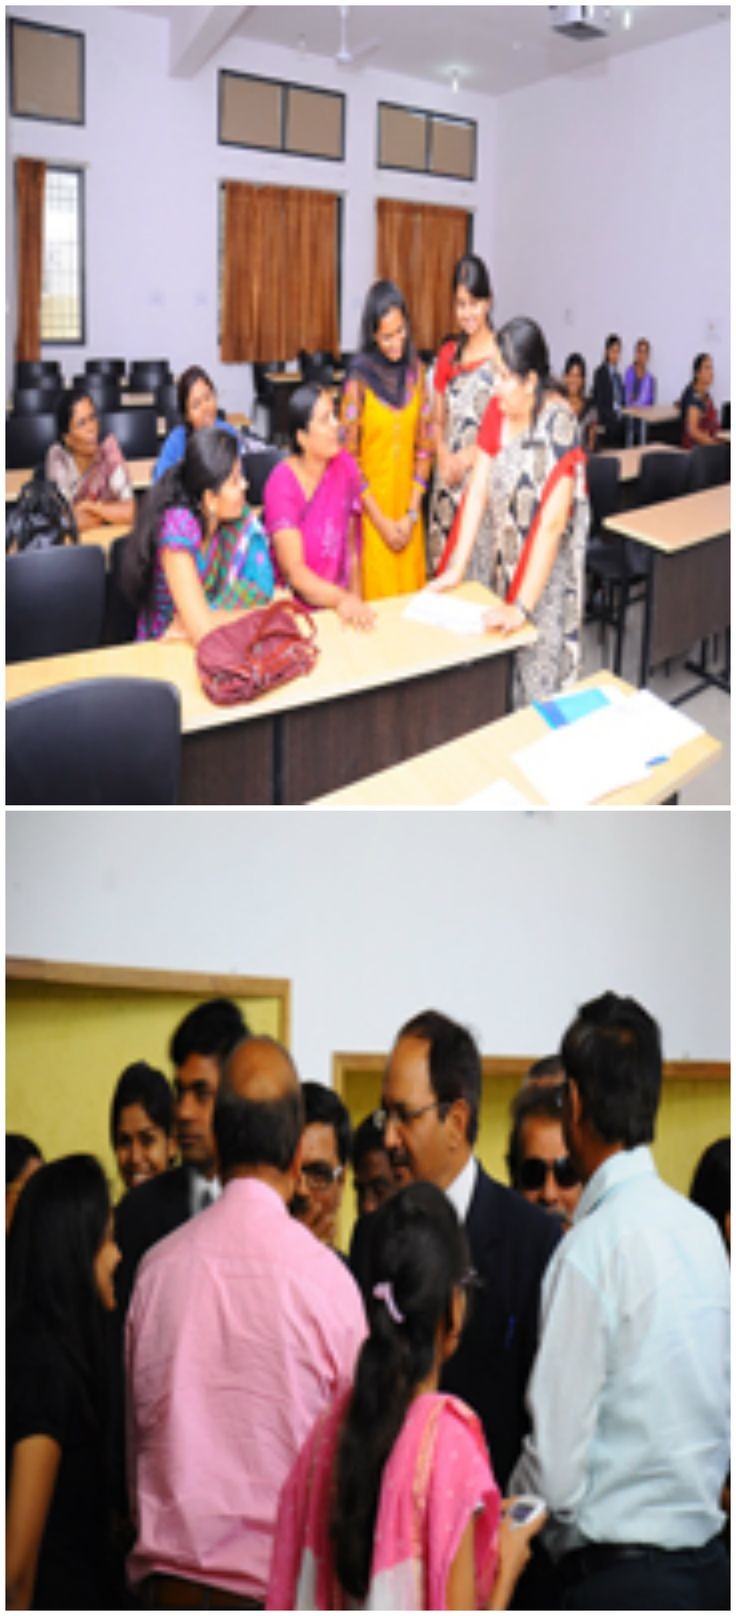 Faculty members #speaking to parents regarding their #ward's #performance and there was an #informal #interaction with #parents as well.